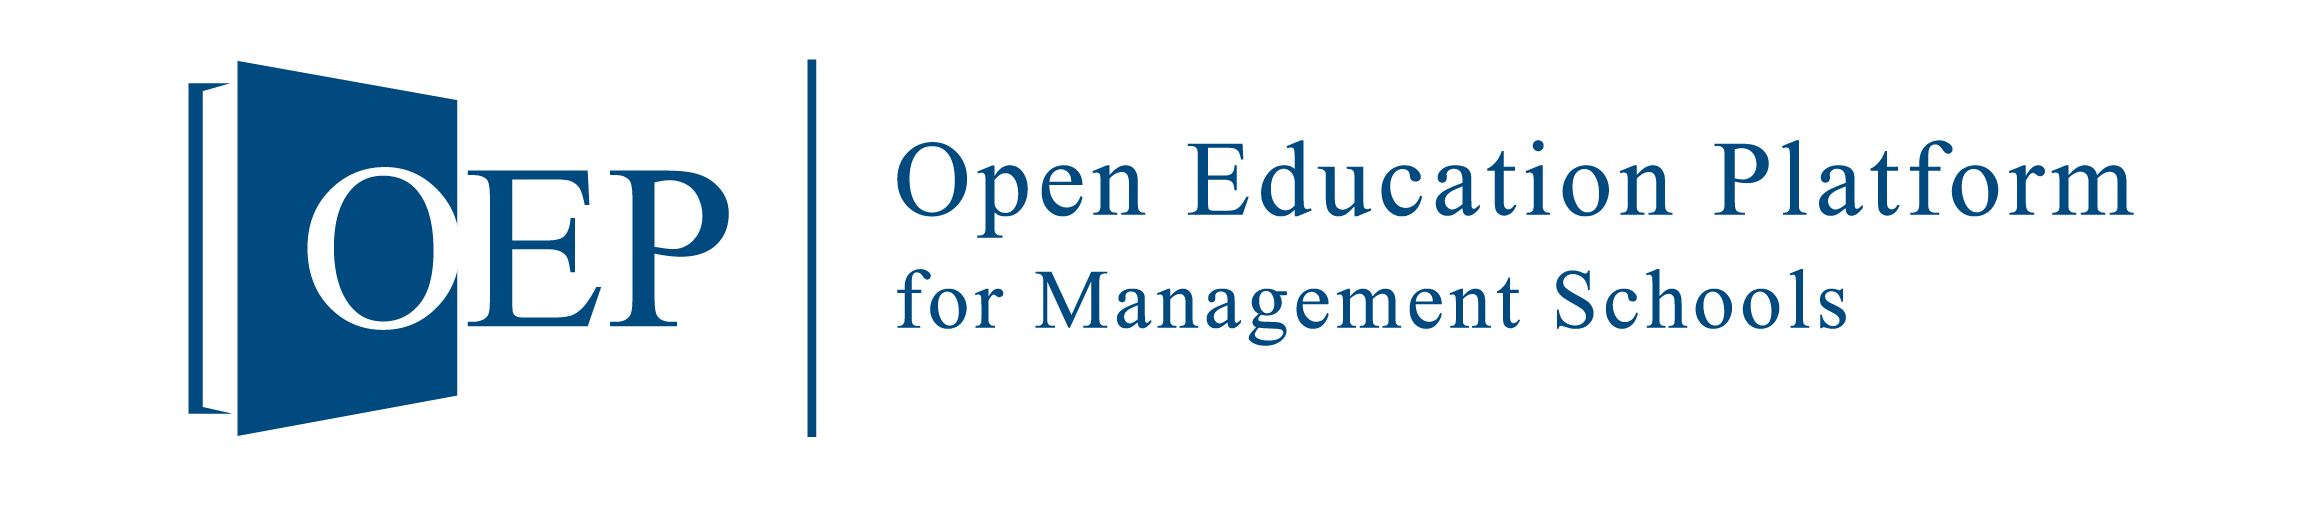 Open Education Platform